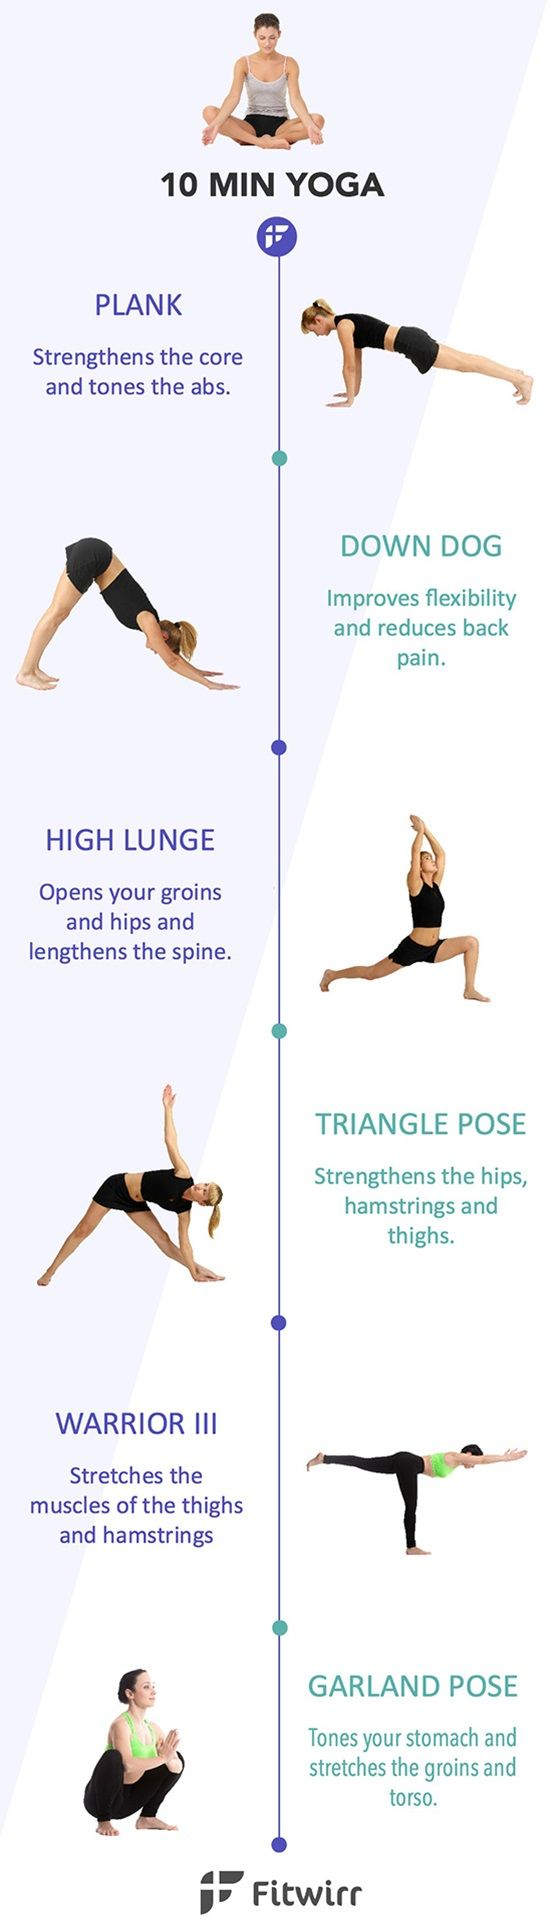 10-Minute Core Power Yoga to Strengthen Your Body